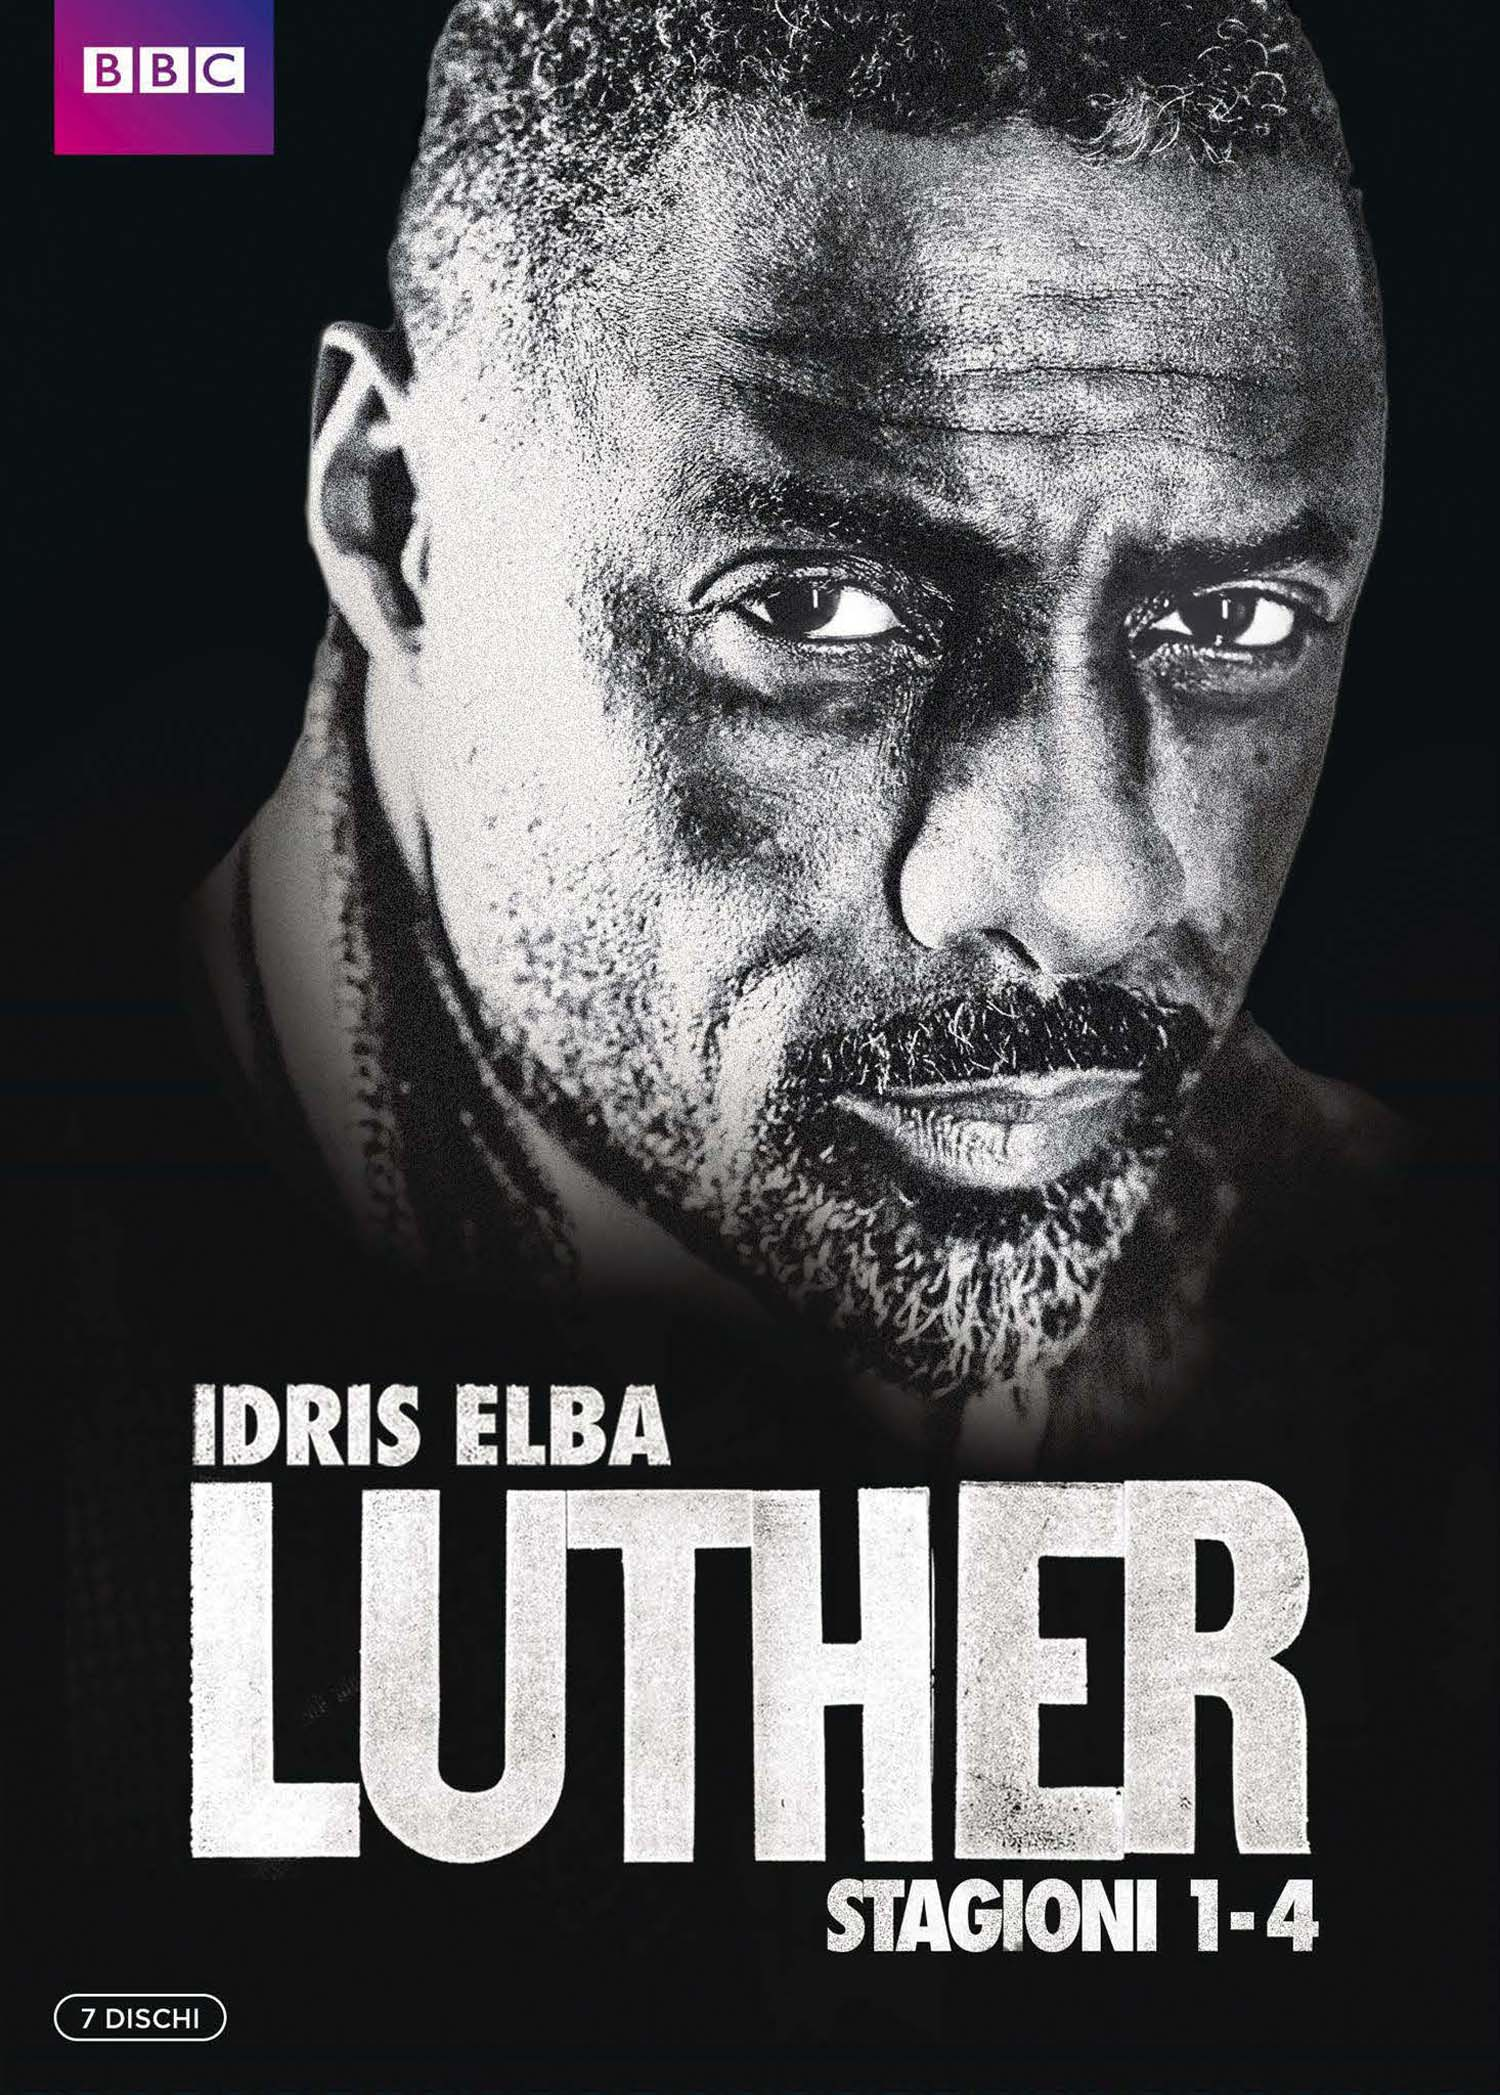 COF.LUTHER - STAGIONI 01-04 (7 DVD) (DVD)